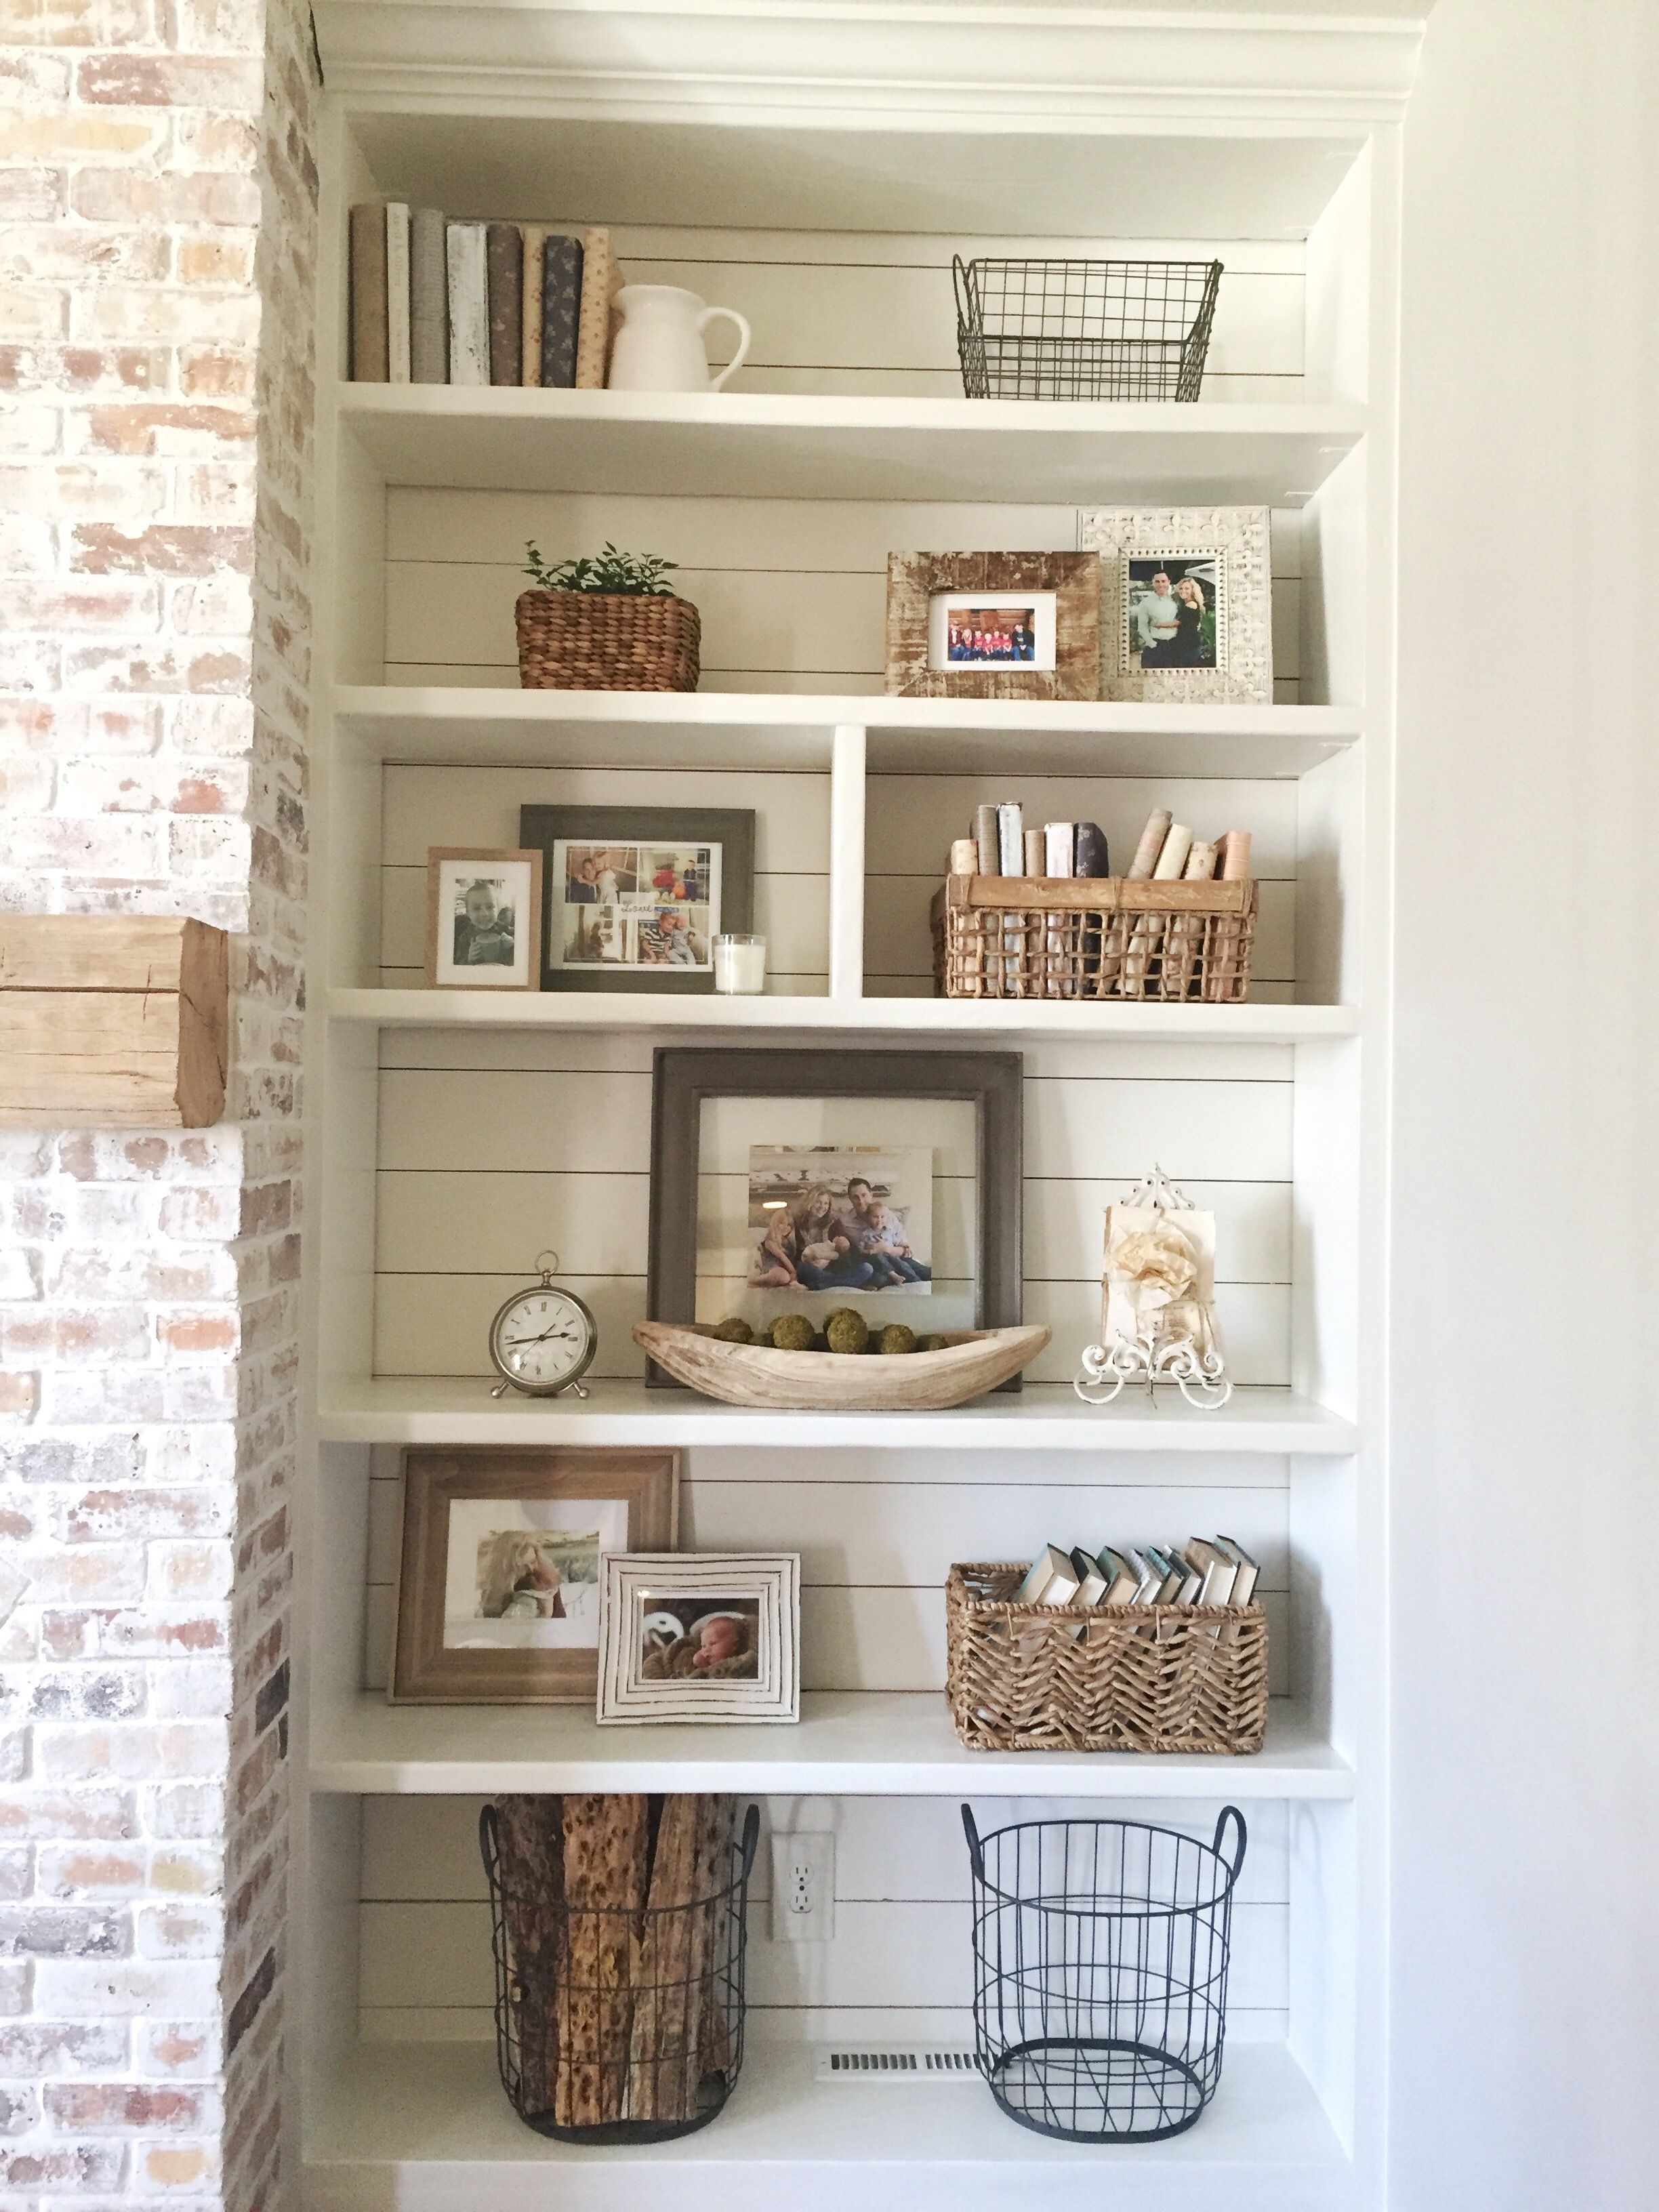 Builtin bookshelves styling and decor shiplap whitewash brick